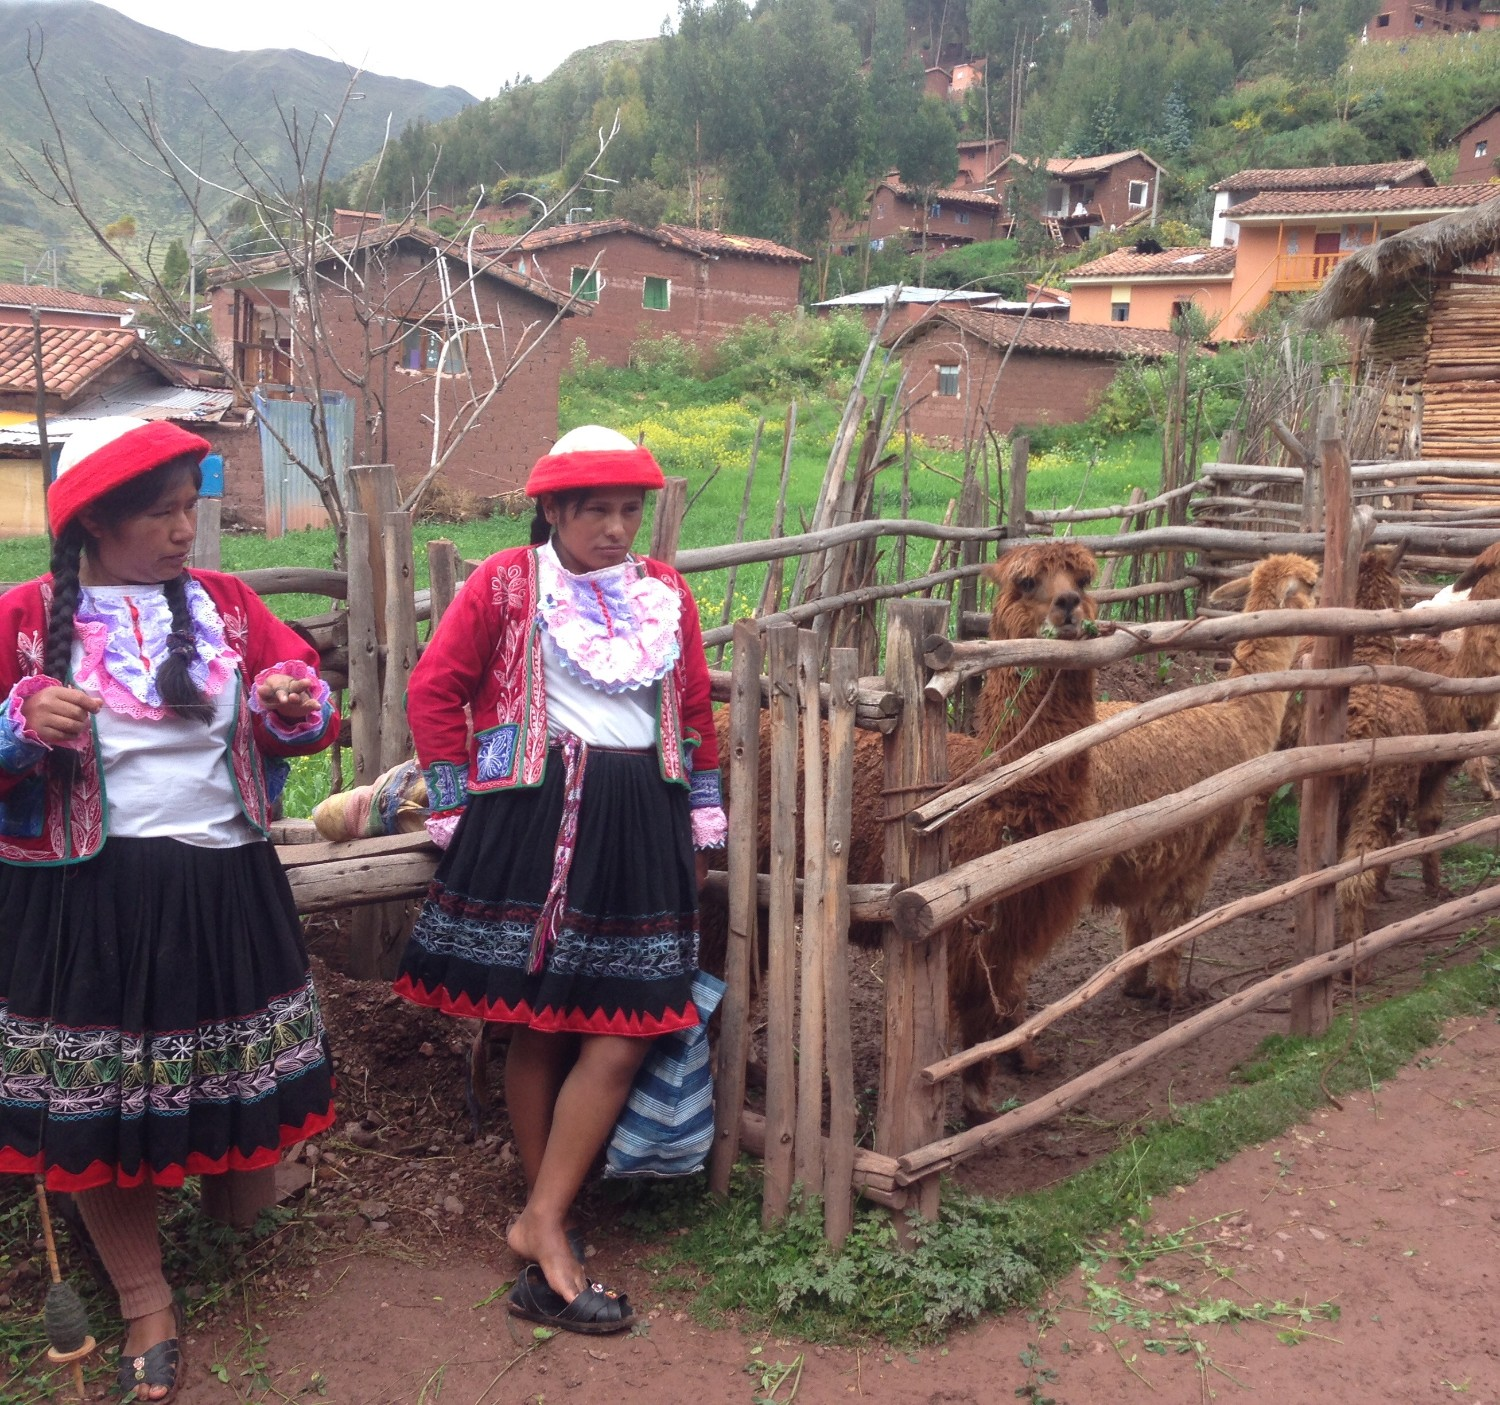 Two women in Ccaccaccollo standing next to llamas in a penned area